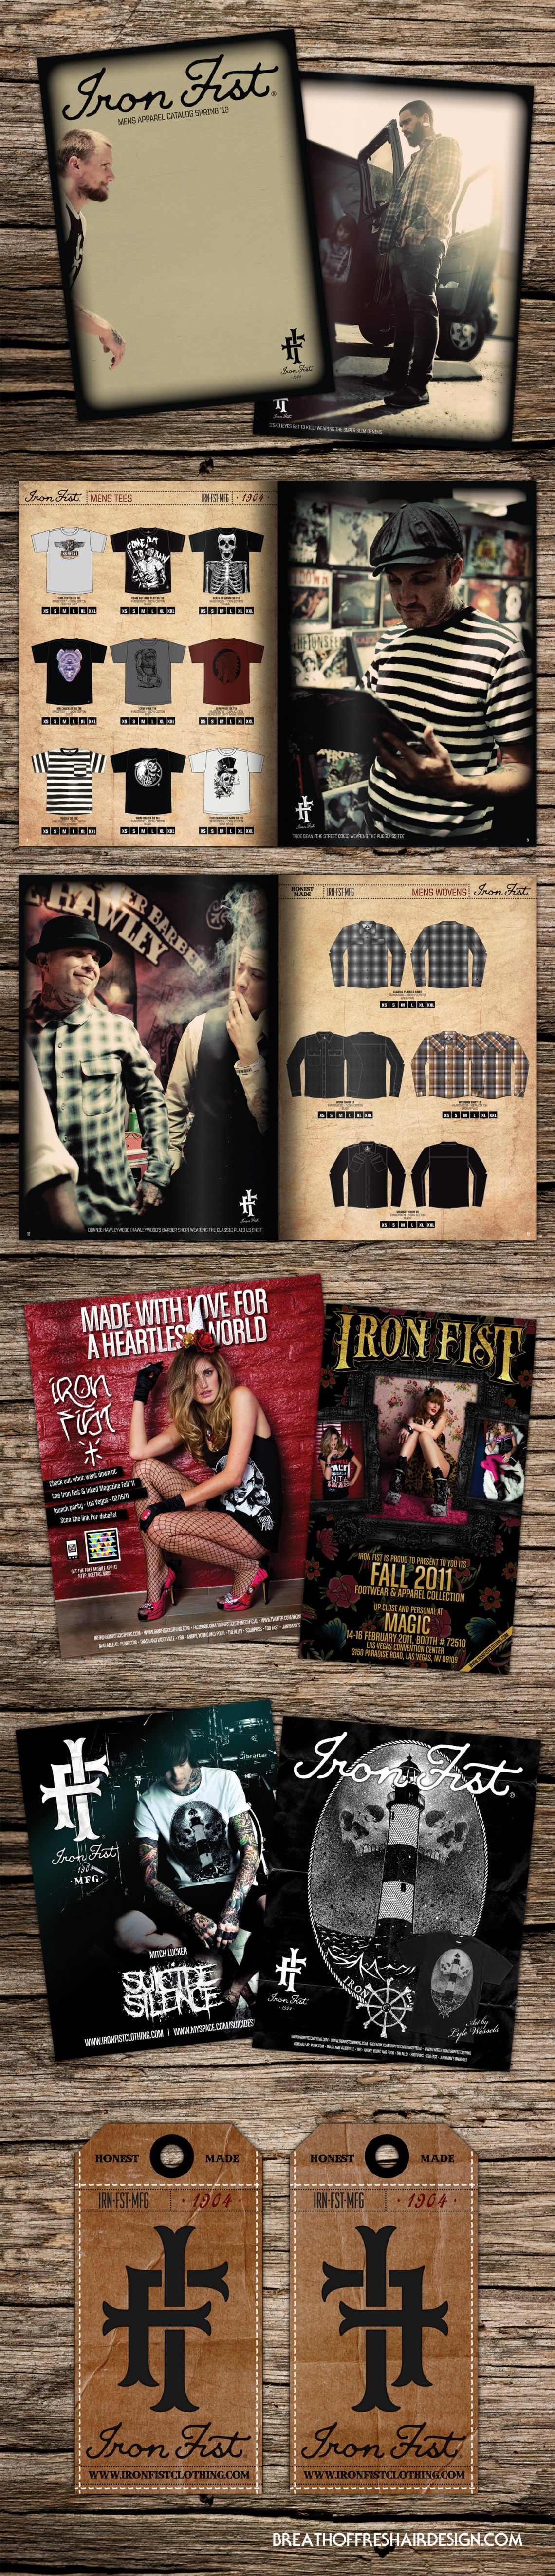 Iron Fist Clothing, Brand, Graphic Design, Catalog design, advertising, Suicide Silence, Heels, Layout, Editorial Design, Breath Of Fresh Air Design, Clothing, Tshirt Design